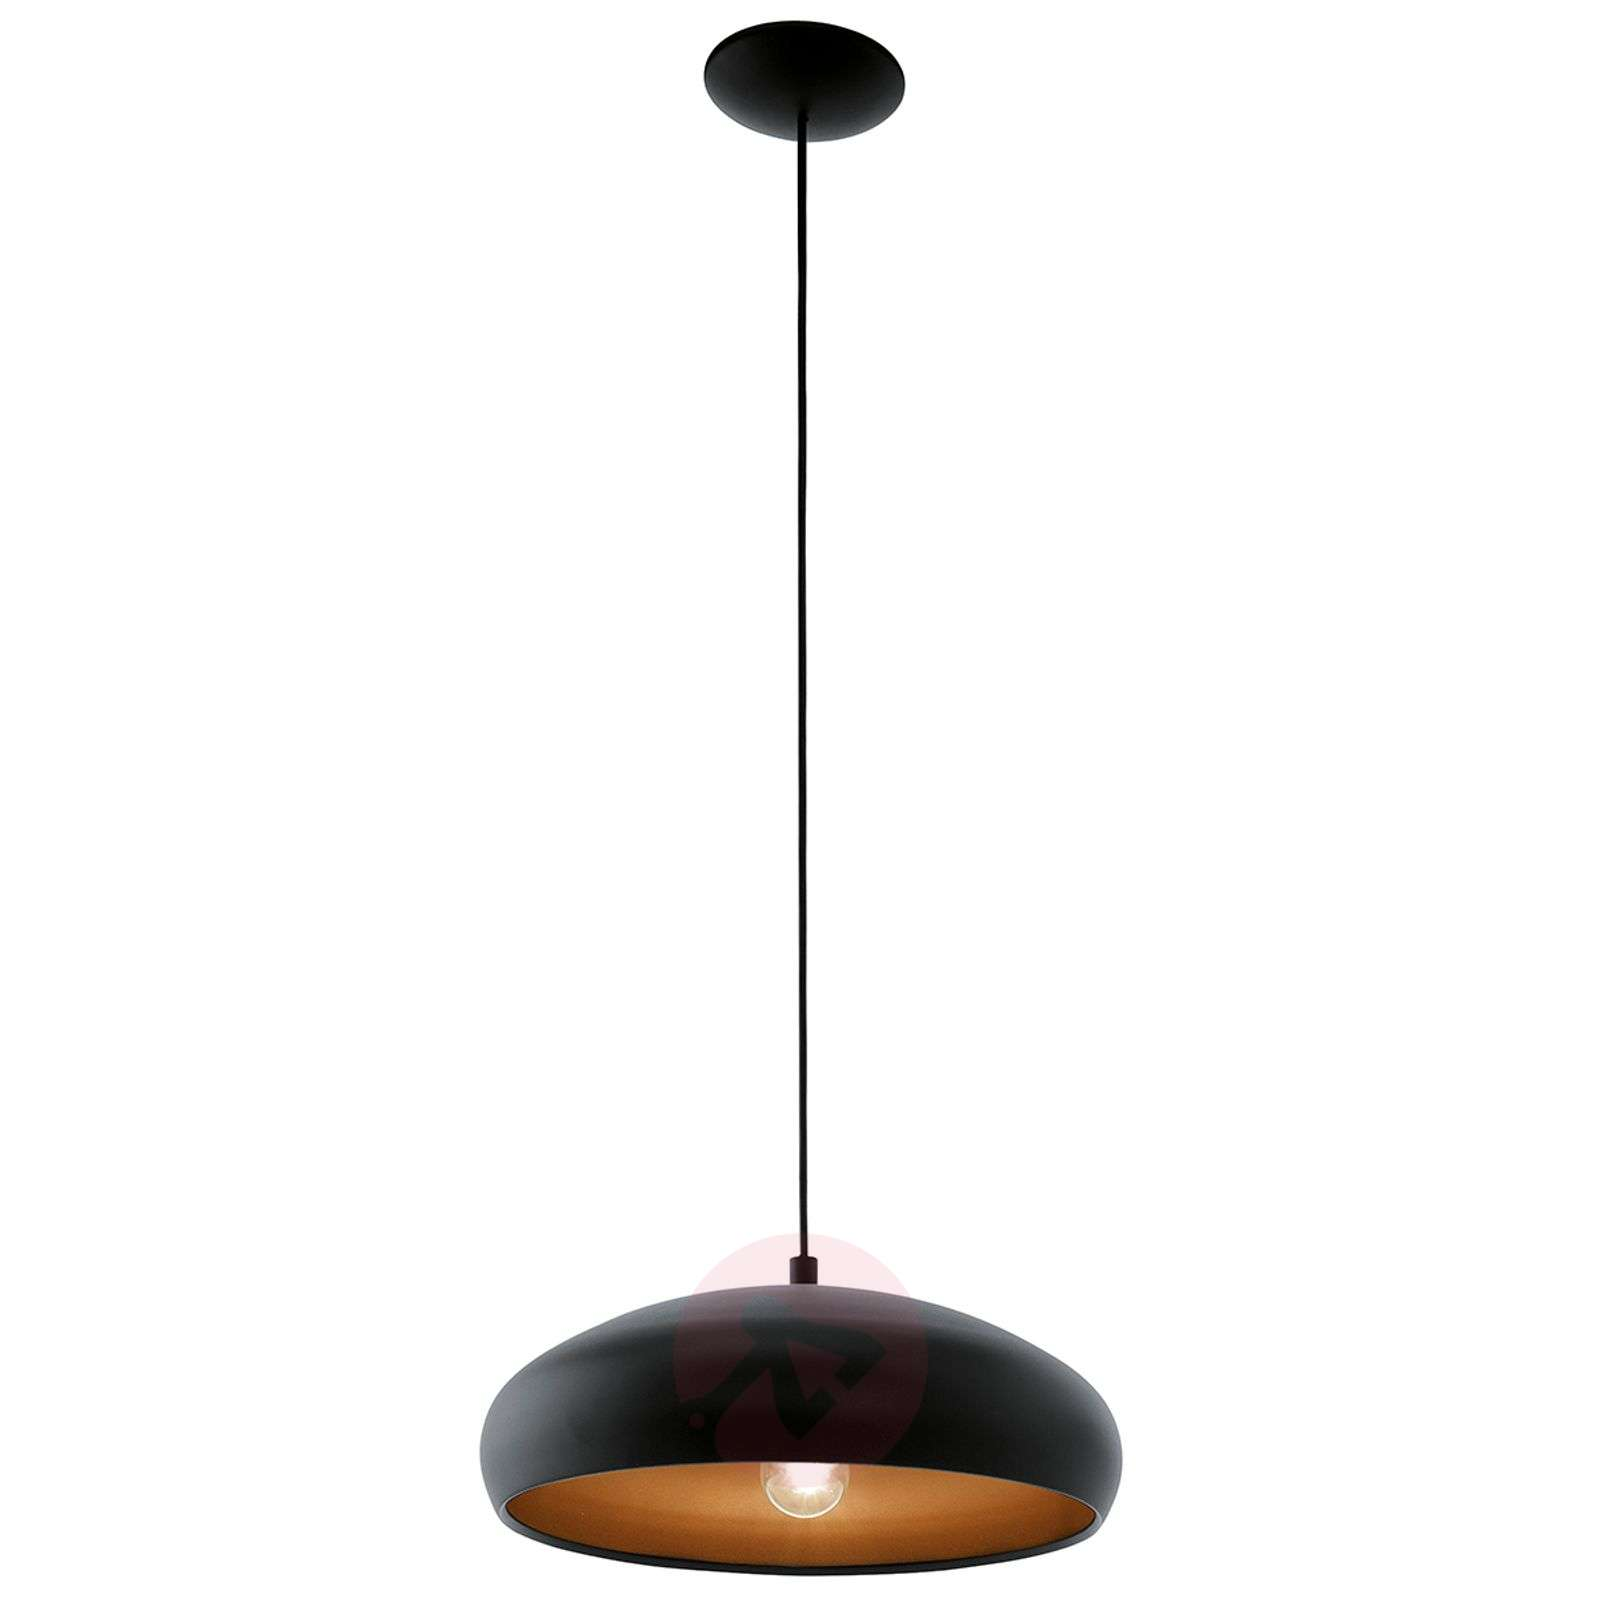 Mogano stylish hanging light w. black finish-3031944-01